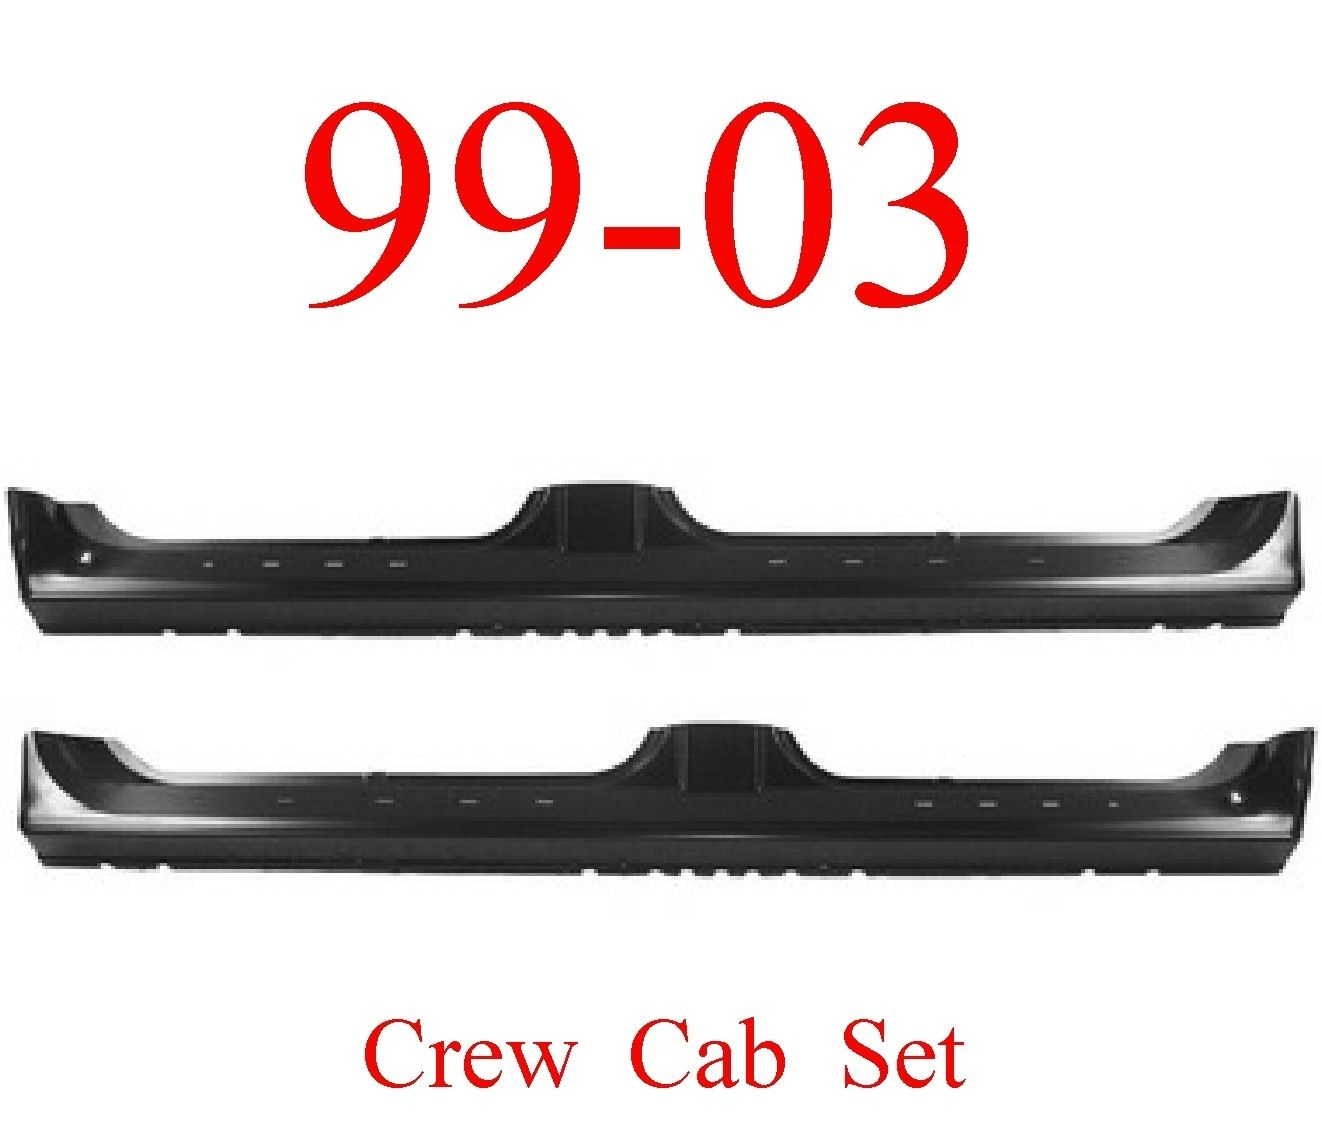 99-03 Ford Crew Cab Extended Rocker Set